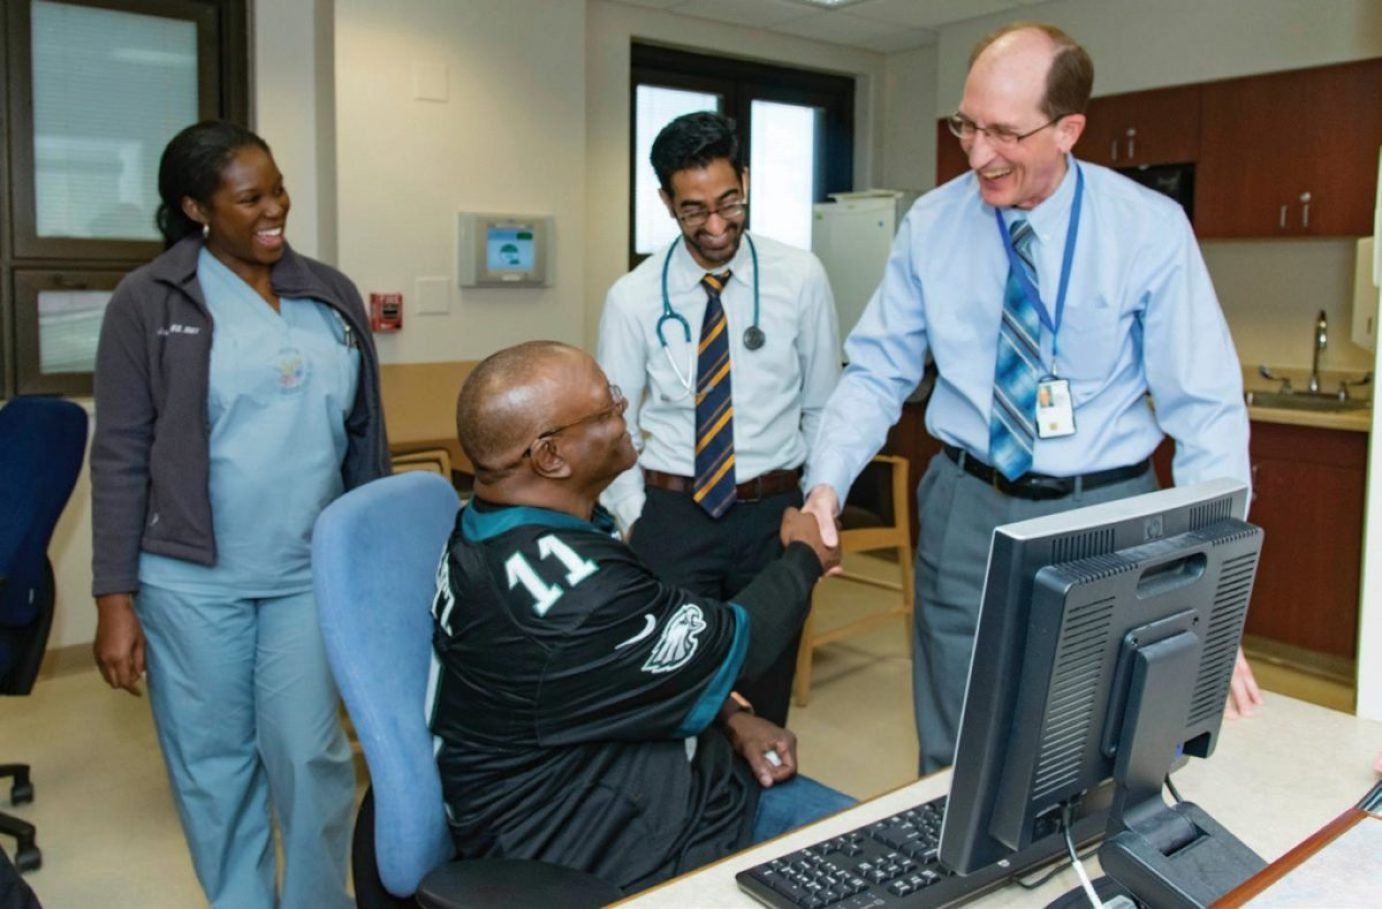 Samuel Kuna, MD, VA physician and director of the Crescenz VA Sleep Center, pictured at right, discusses the benefits of the REVAMP app, which enables veterans to play a primary role in tracking sleep data and adjusting sleep habits to mitigate the effects of obstructive sleep apnea, with Army veteran Walter Broadnax at the Corporal Michael J. Crescenz VAMC. Kuna, who led the development of REVAMP, is a core investigator with the VA Center for Health Equity Research and Promotion (CHERP), and in 2012 was awarded a VA Employee Innovation Award to translate his research into practice. In August 2017, REVAMP launched as a pilot at 10 sites across the country and has since expanded to additional sites within the VA health care system.